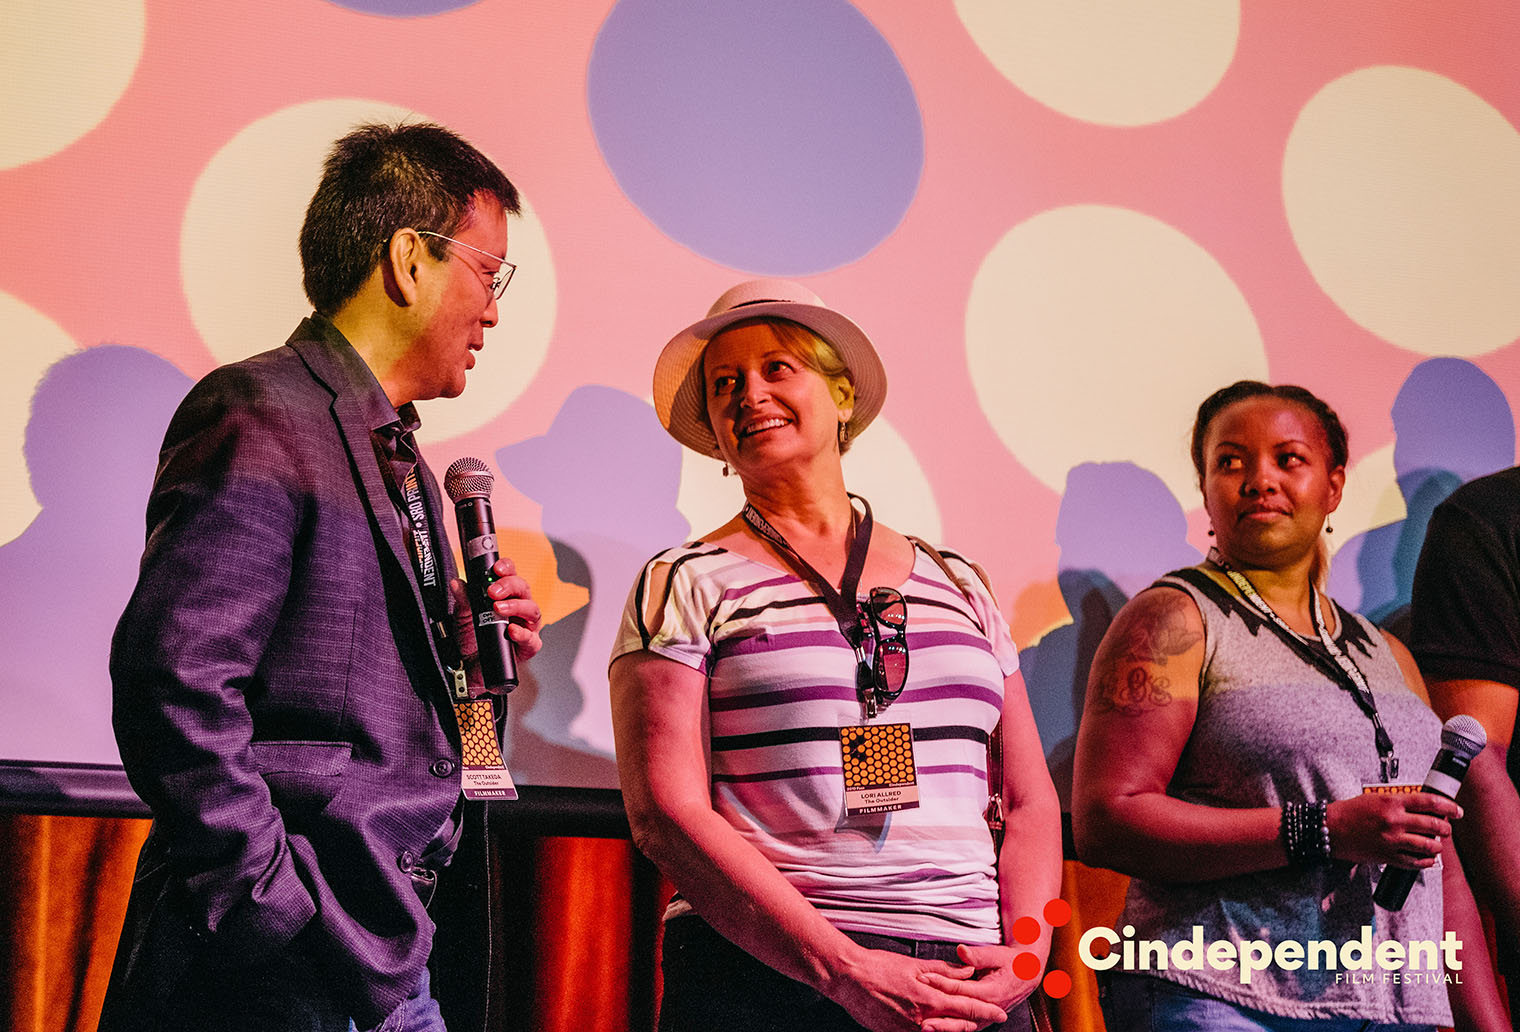 BS Filmworks directors Scott Takeda and Lori Kay Allred answer questions at the Cindependent Film Festival filmmaker Q&A